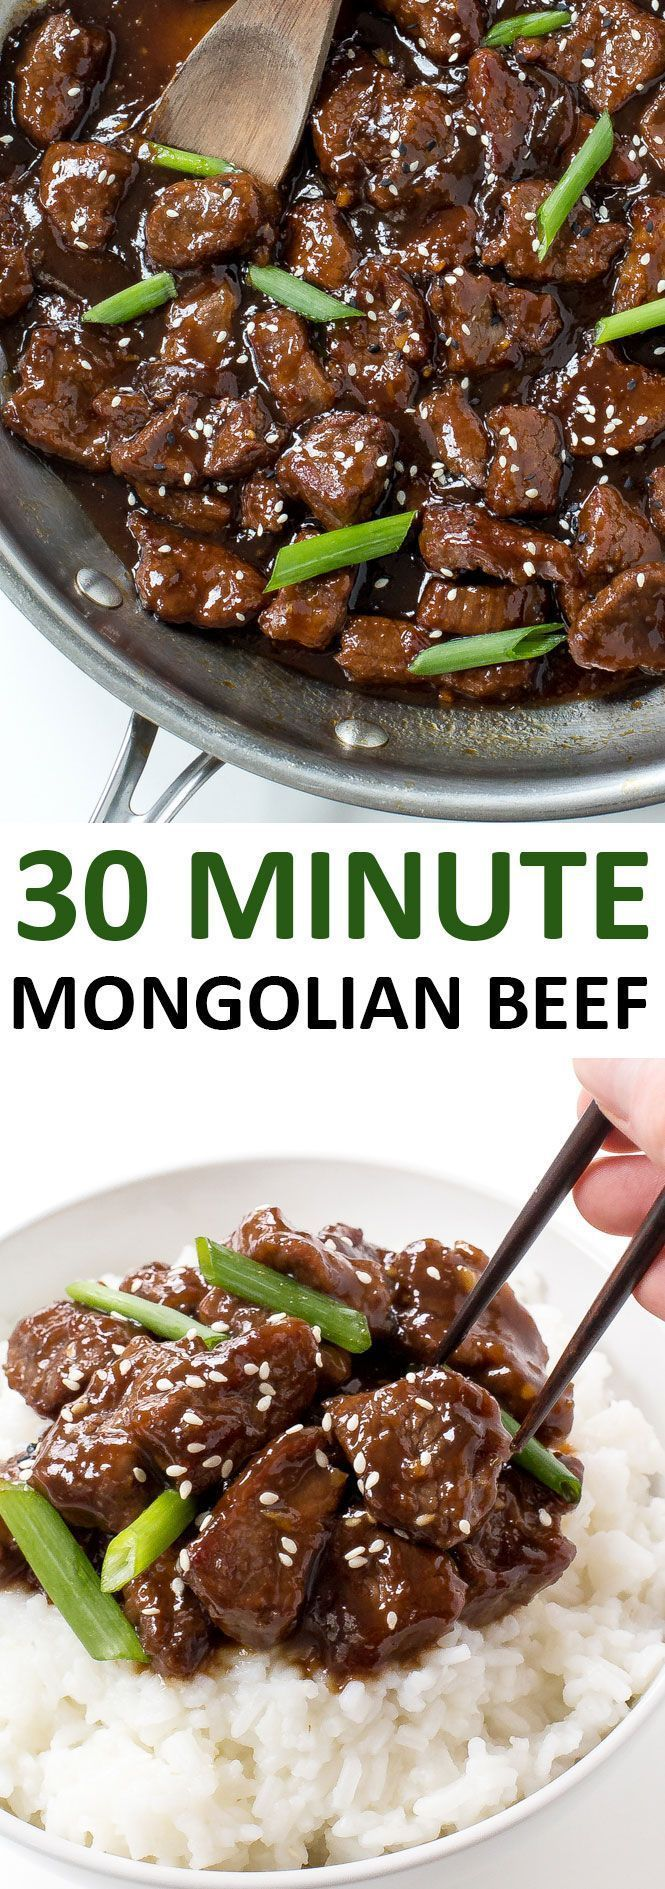 30 Minute Mongolian Beef (Better than takeout!) – Chef Savvy